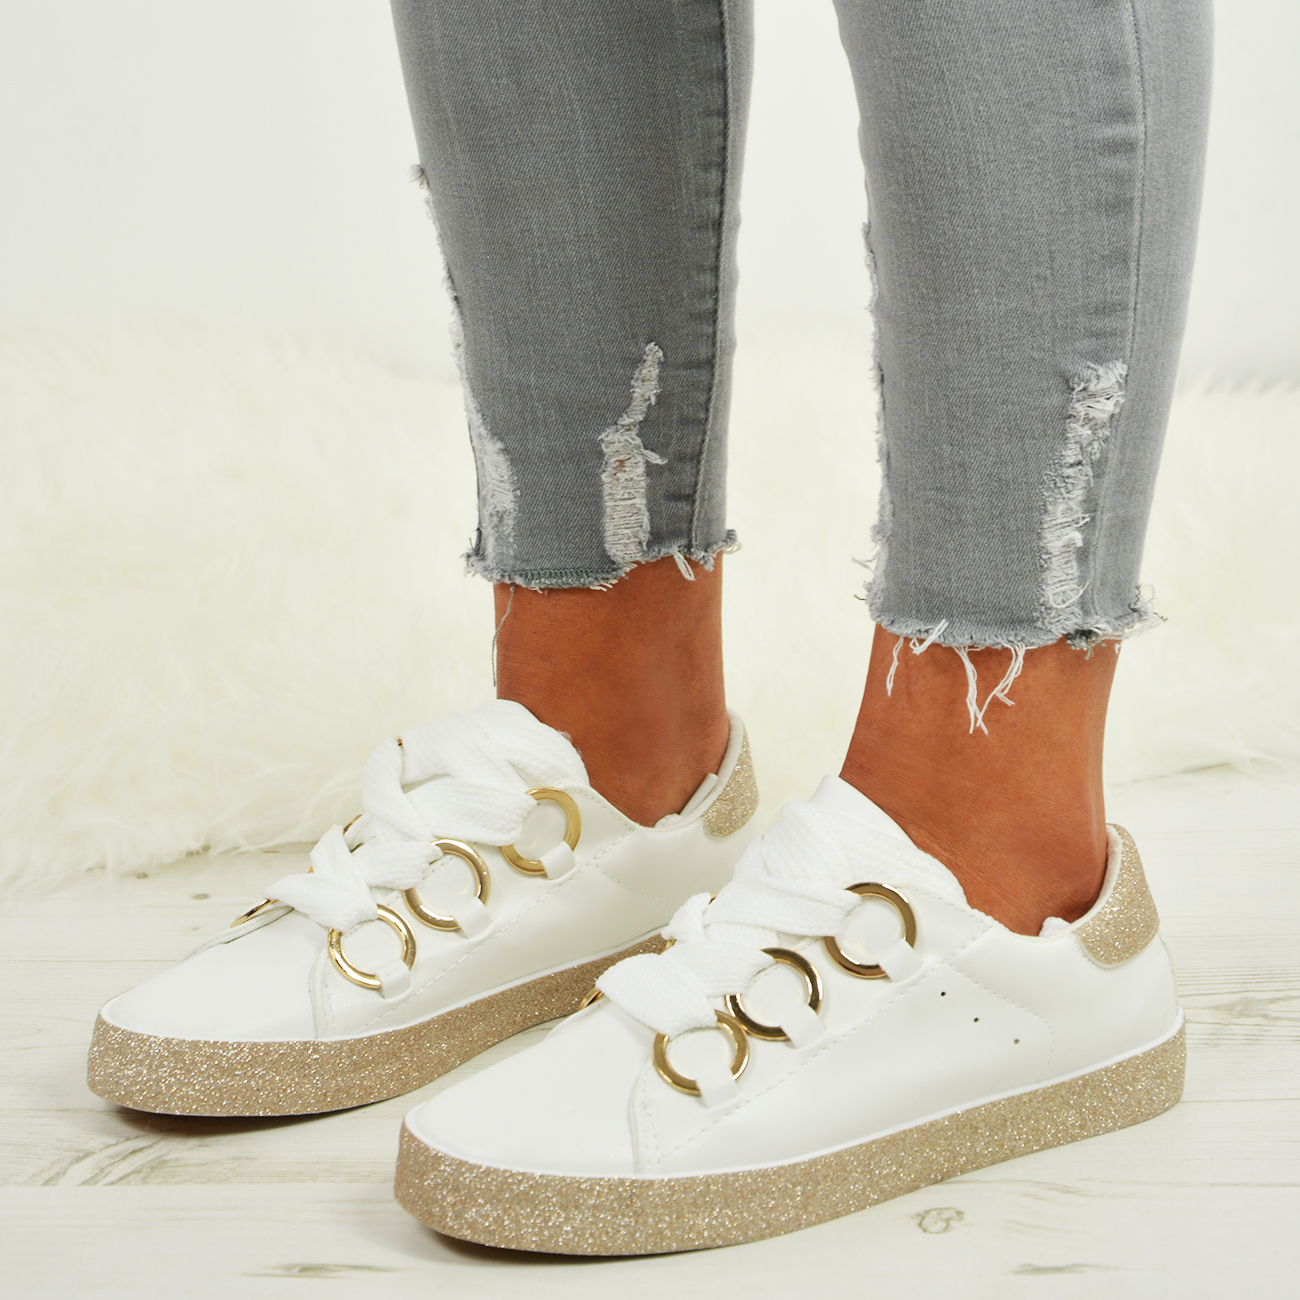 LADIES-WOMENS-GLITTER-SNEAKERS-SPARKLE-TRAINERS-LACE-UP-PLIMSOLL-PUMPS-SHOES thumbnail 18